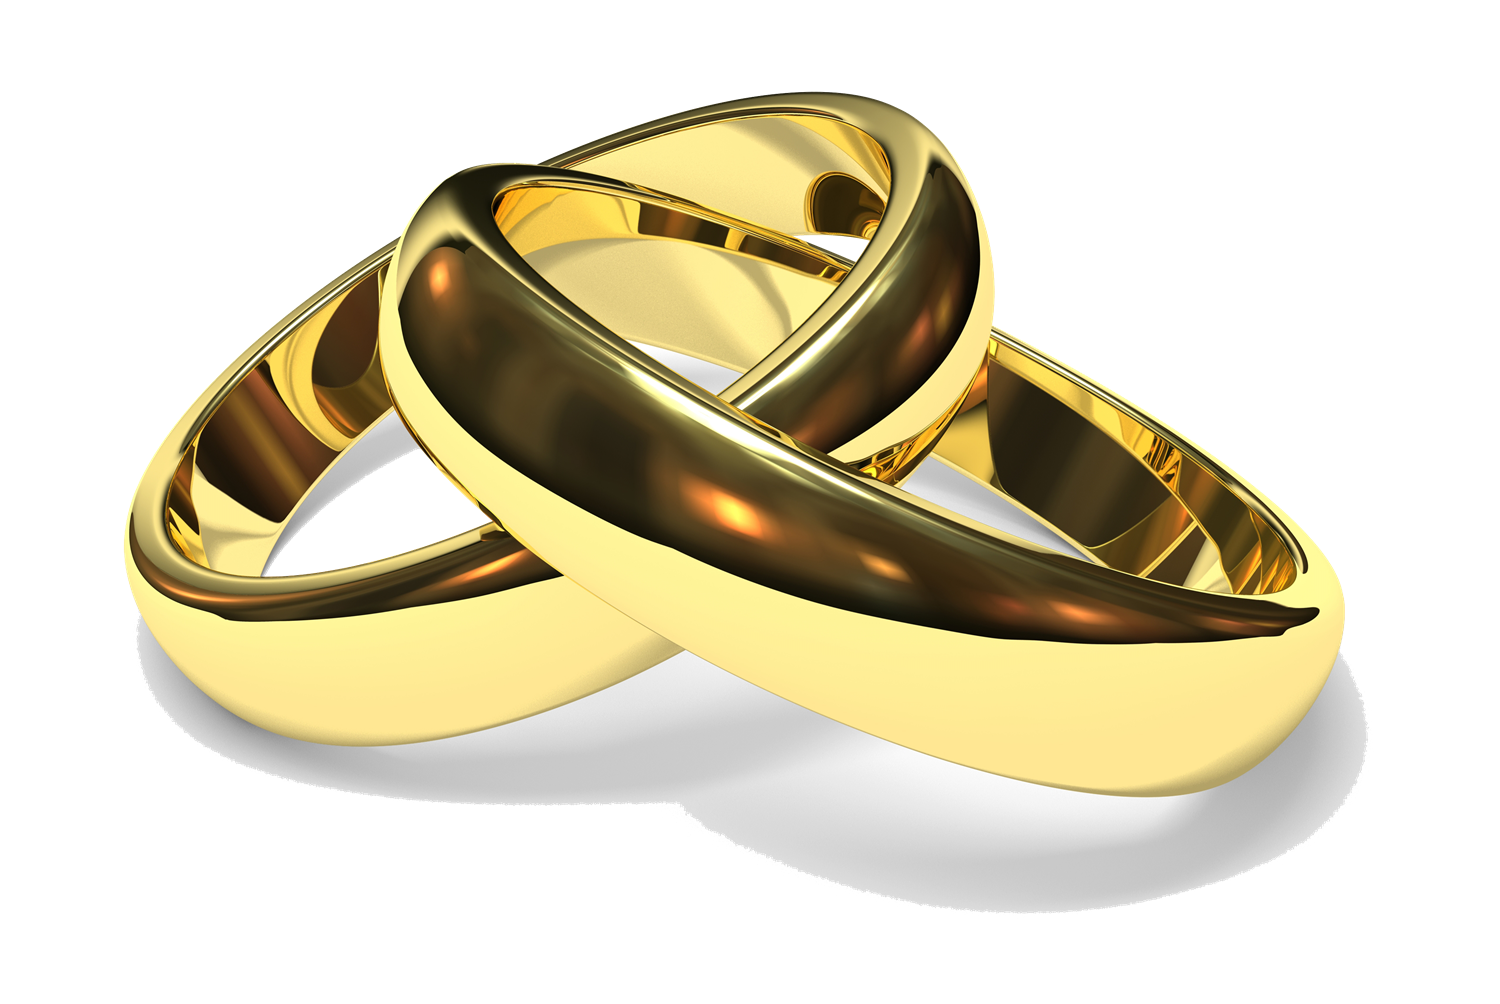 Engagement Rings Png (+).